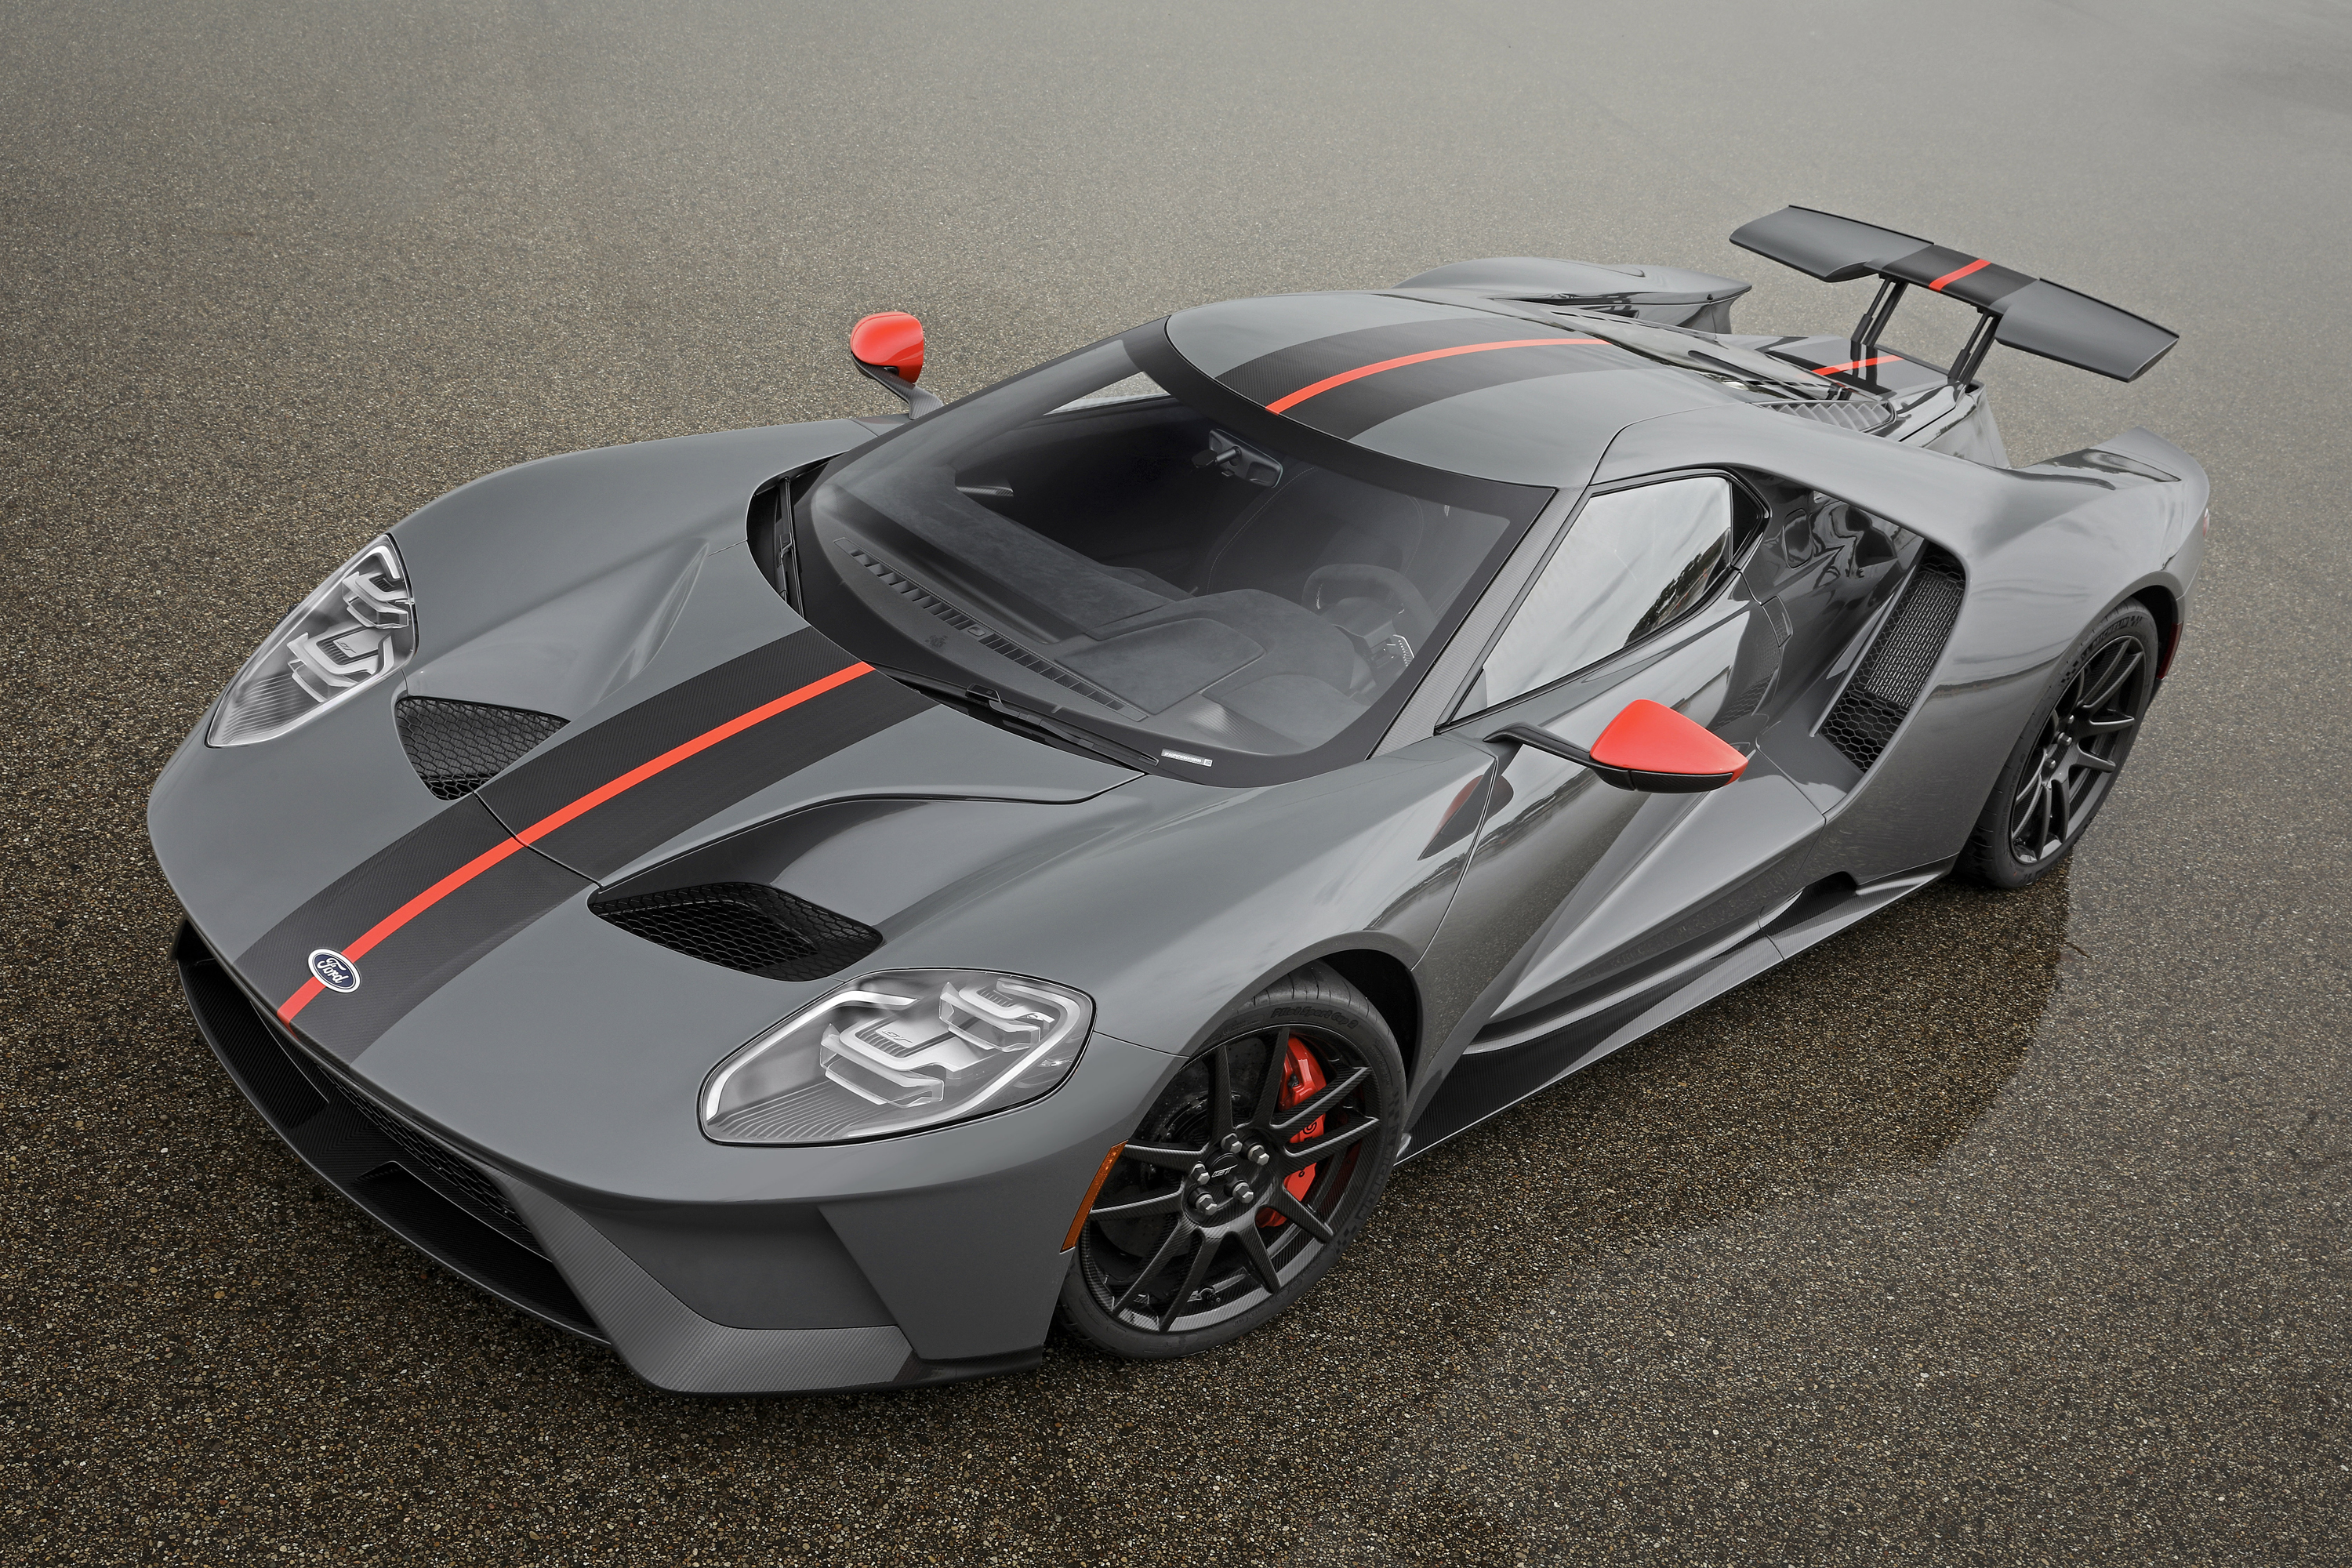 Ford GT Carbon Series Leadfoot Top